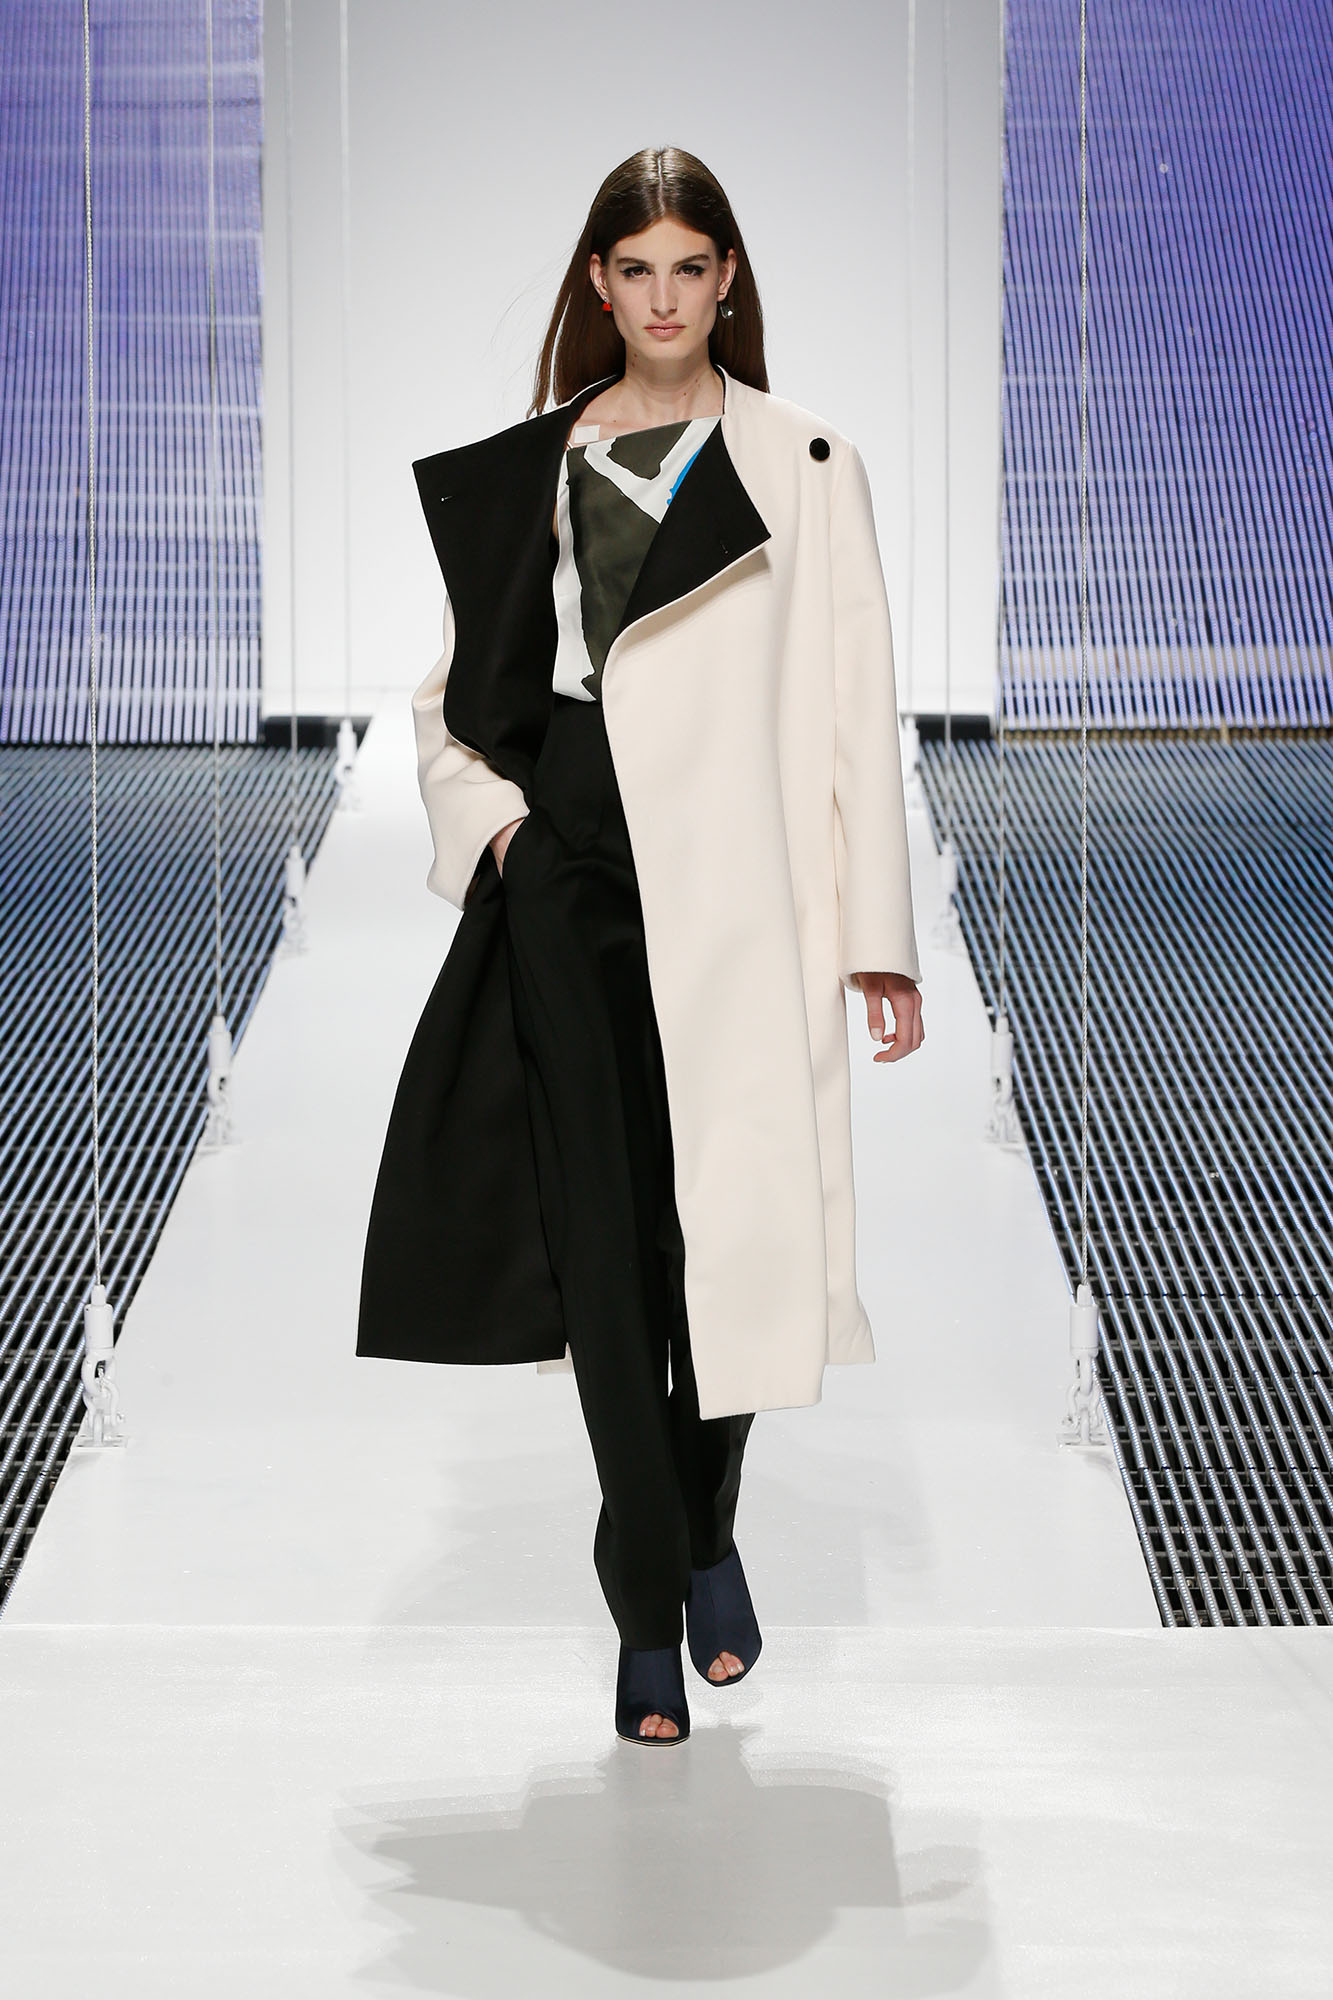 christian-dior-fall-winter-cruise-collection (9)